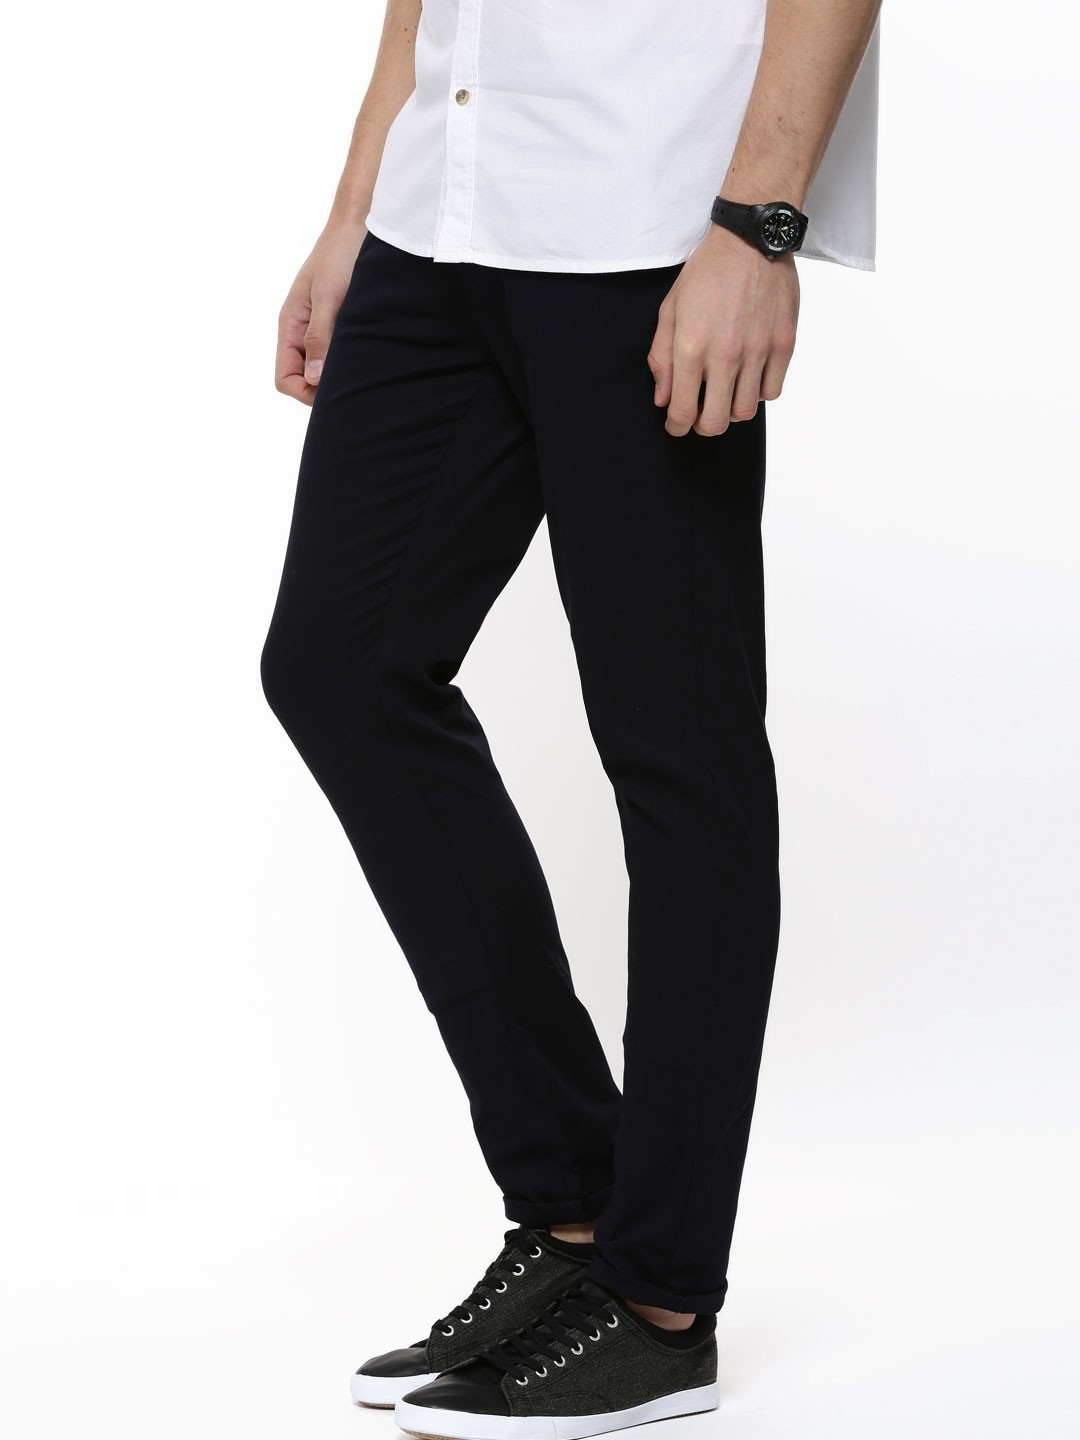 Our wide range of trousers will add a refined touch to your wardrobe and are available in a variety of styles and colours. Show off your trendy style with our ankle length trousers or choose a more classic look with our extensive range of Chinos. From smart looks to casual styles our trousers range.